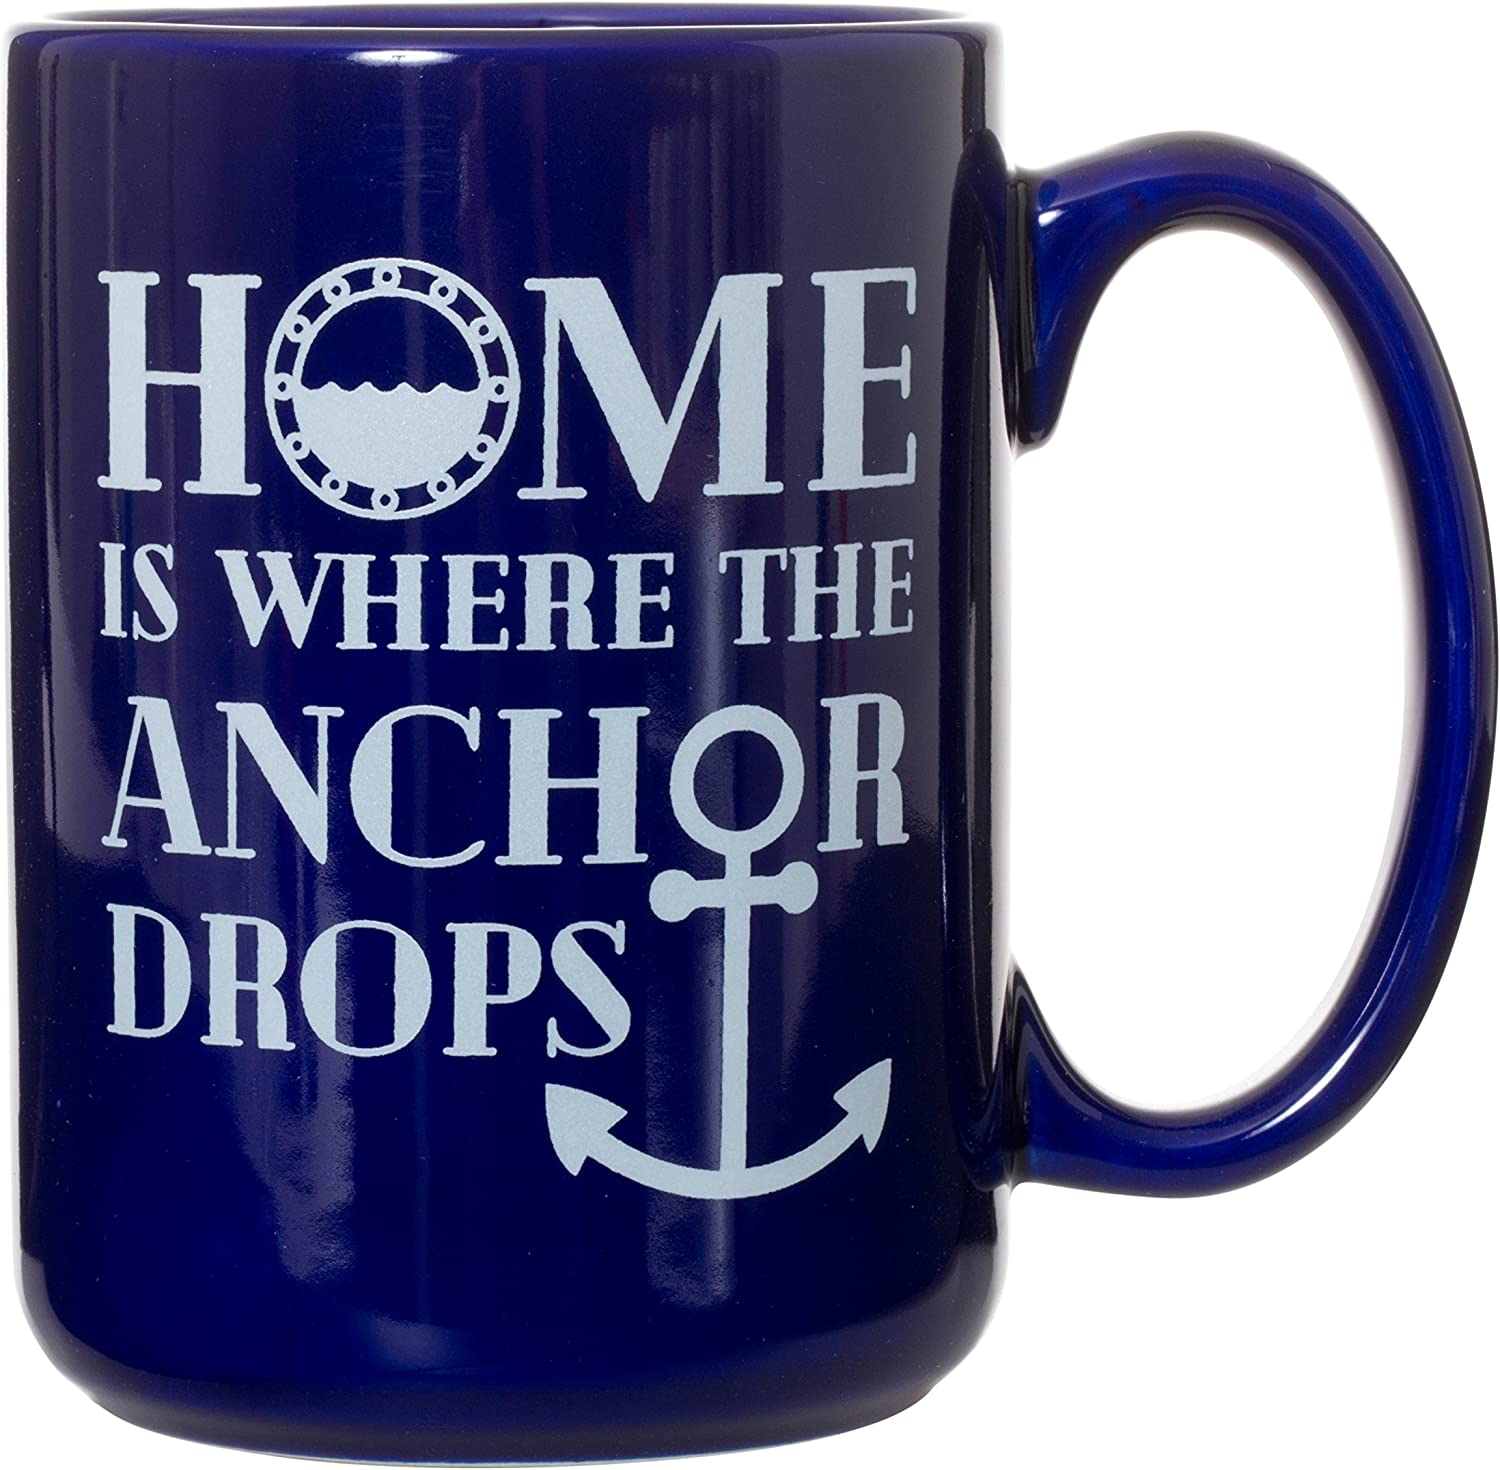 Home Is Where The Anchor Drops - Blue 15 oz Deluxe Double-Sided Coffee Tea Mug